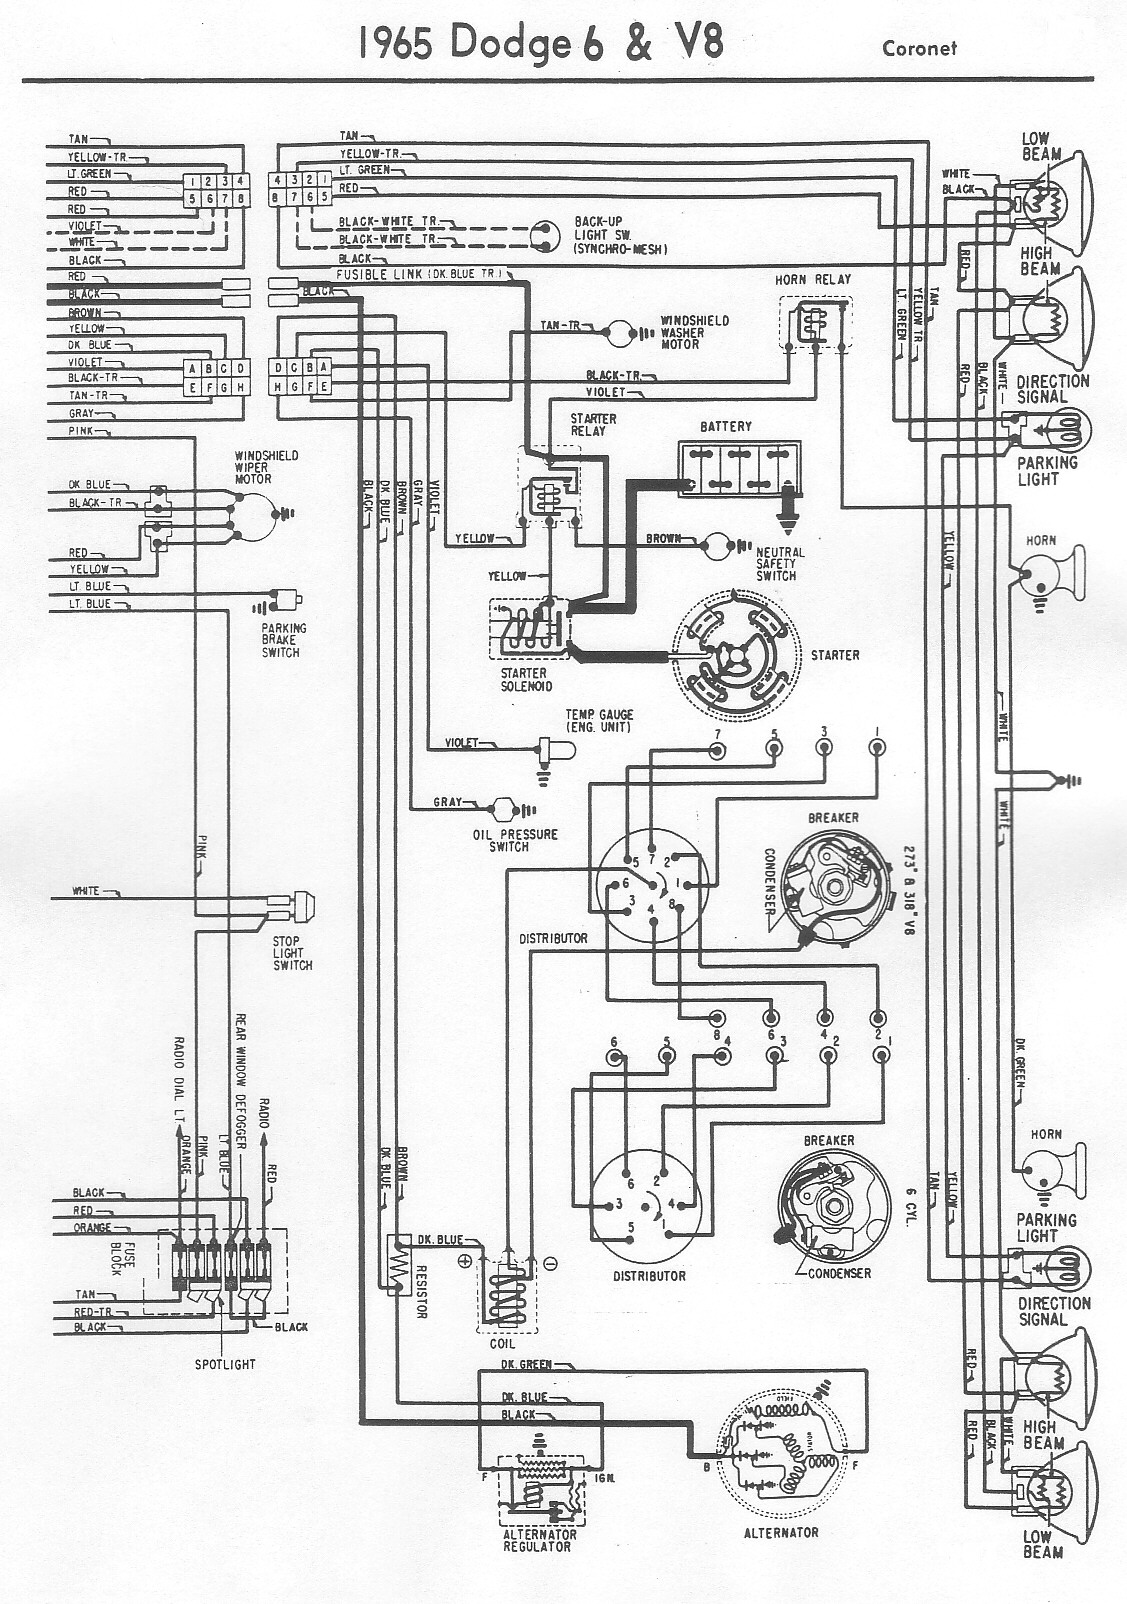 Ford Ranger Dash Wiring Diagram Schemes. Ford. Auto Wiring